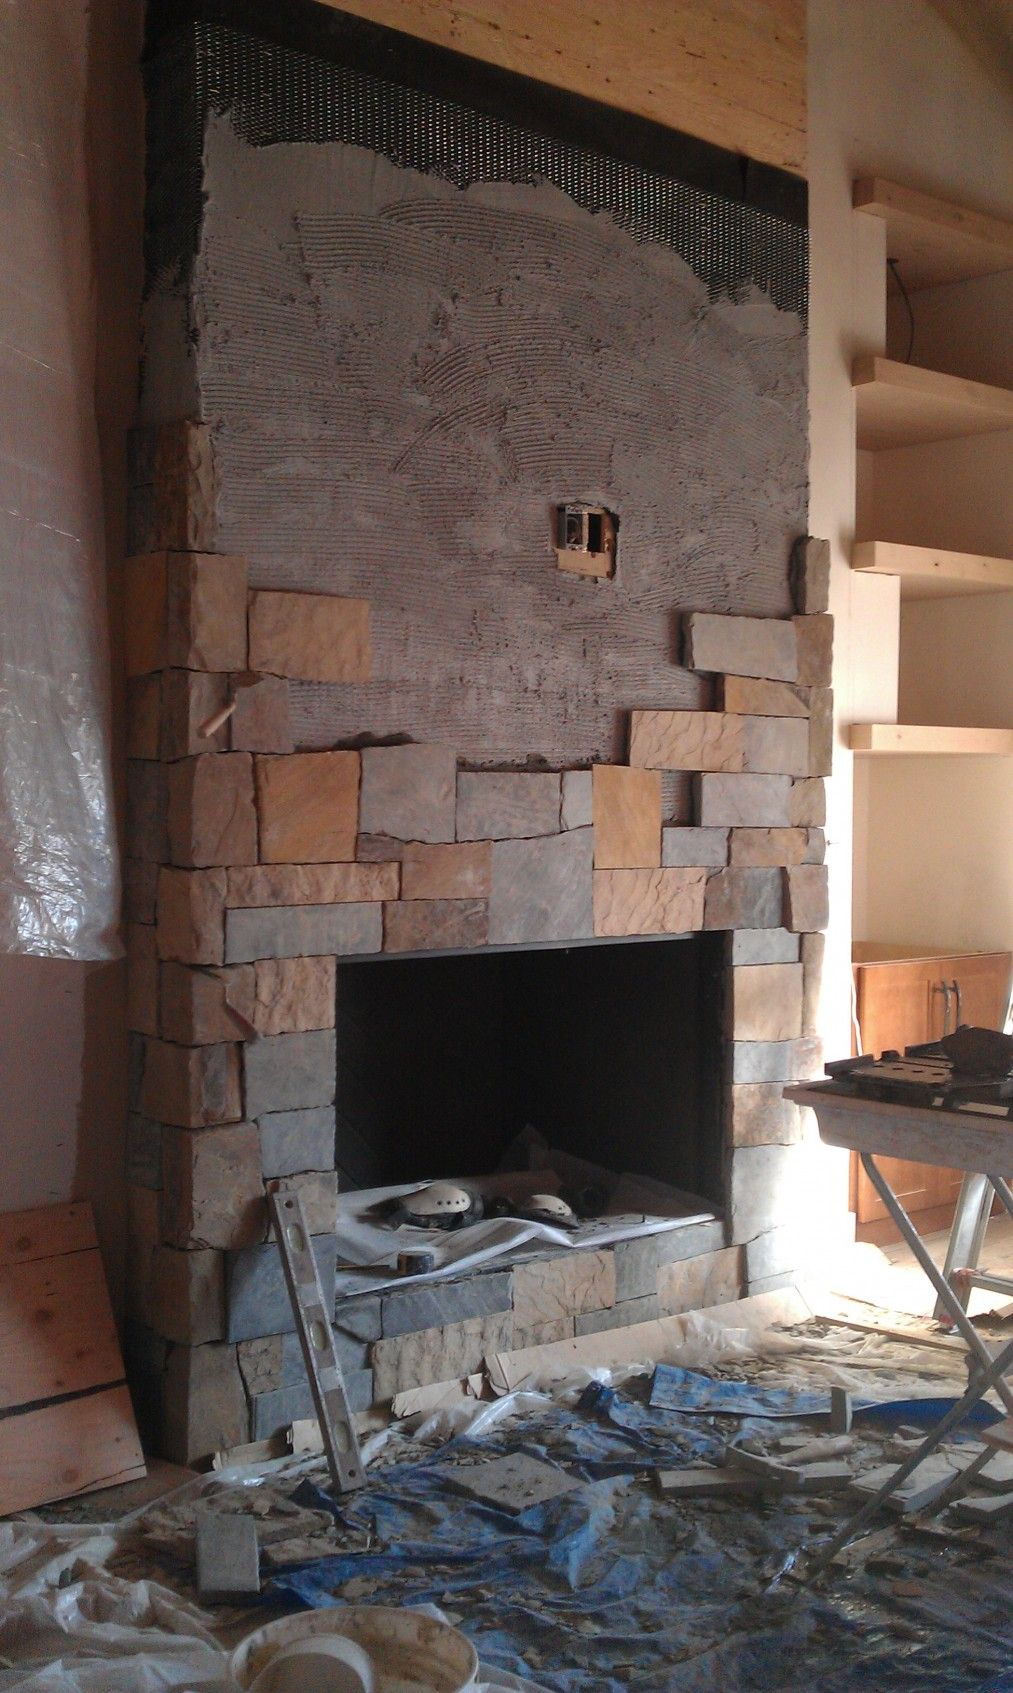 Marvelous Remodel Stone Fireplace Ideas Part - 3: Marvelous Stone Fireplace Designs: The Exclusivity: Extraordinary Interior  Condo Remodel Stone Fireplace Design On Progress